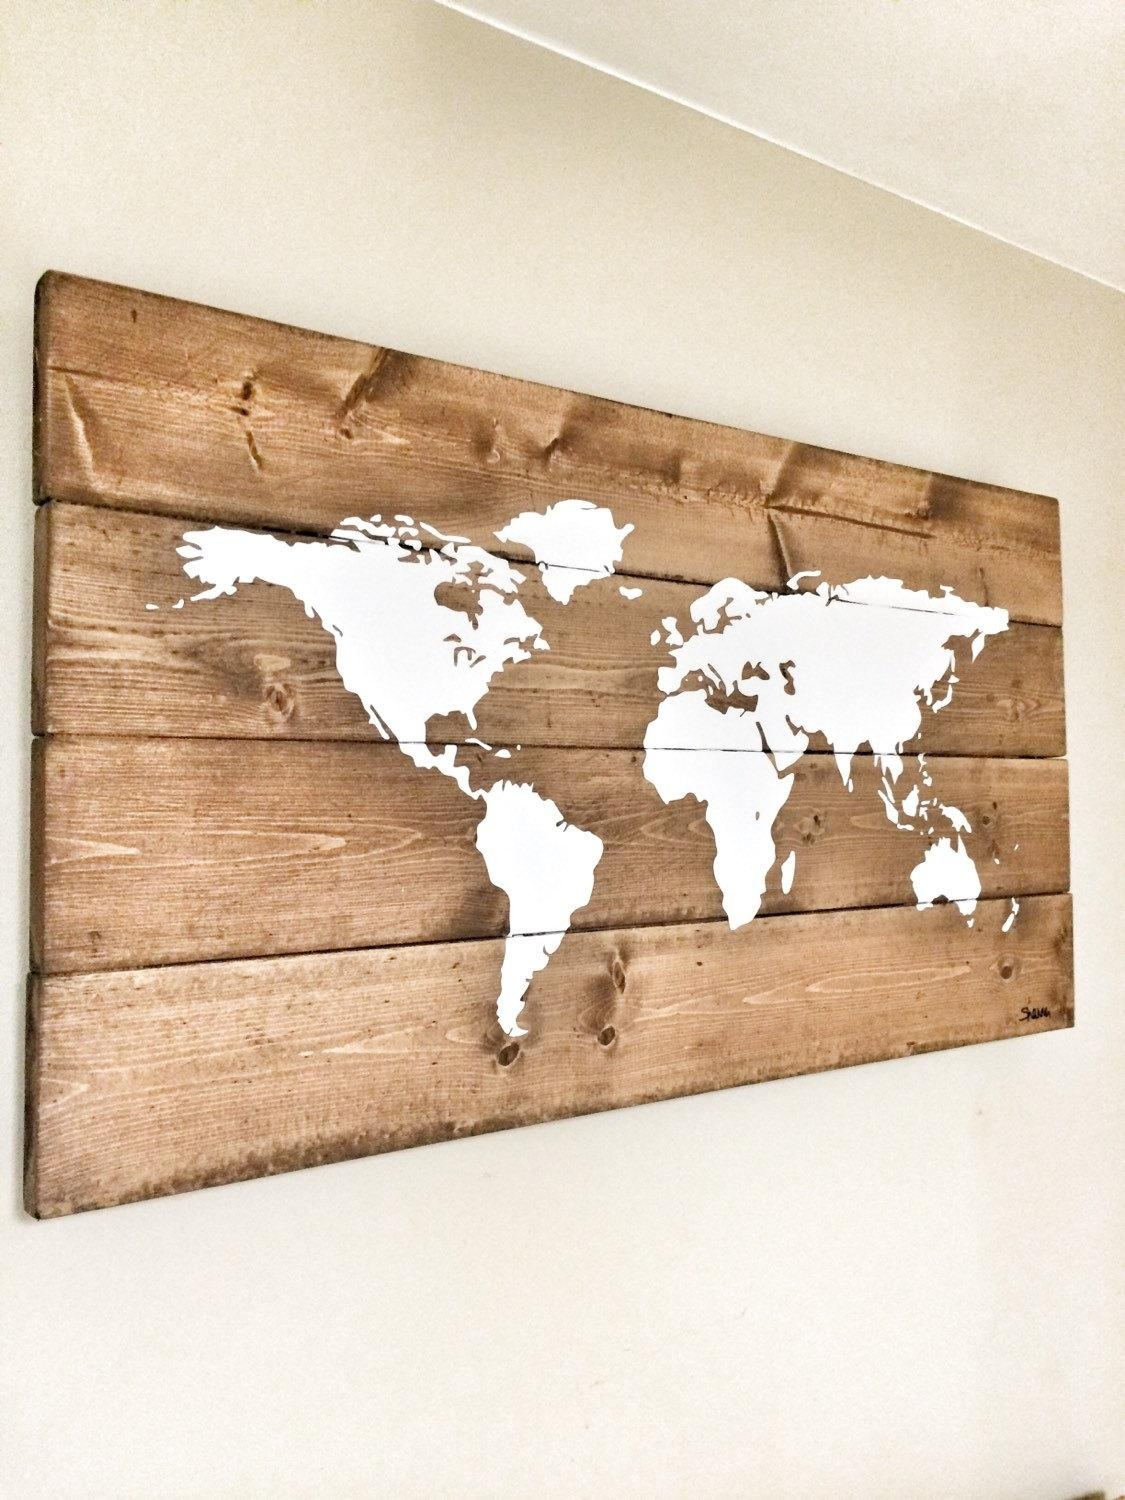 Wall Art Designs: Amazing Wooden World Map Wall Art, Large Wood Inside World Map Wood Wall Art (View 12 of 20)